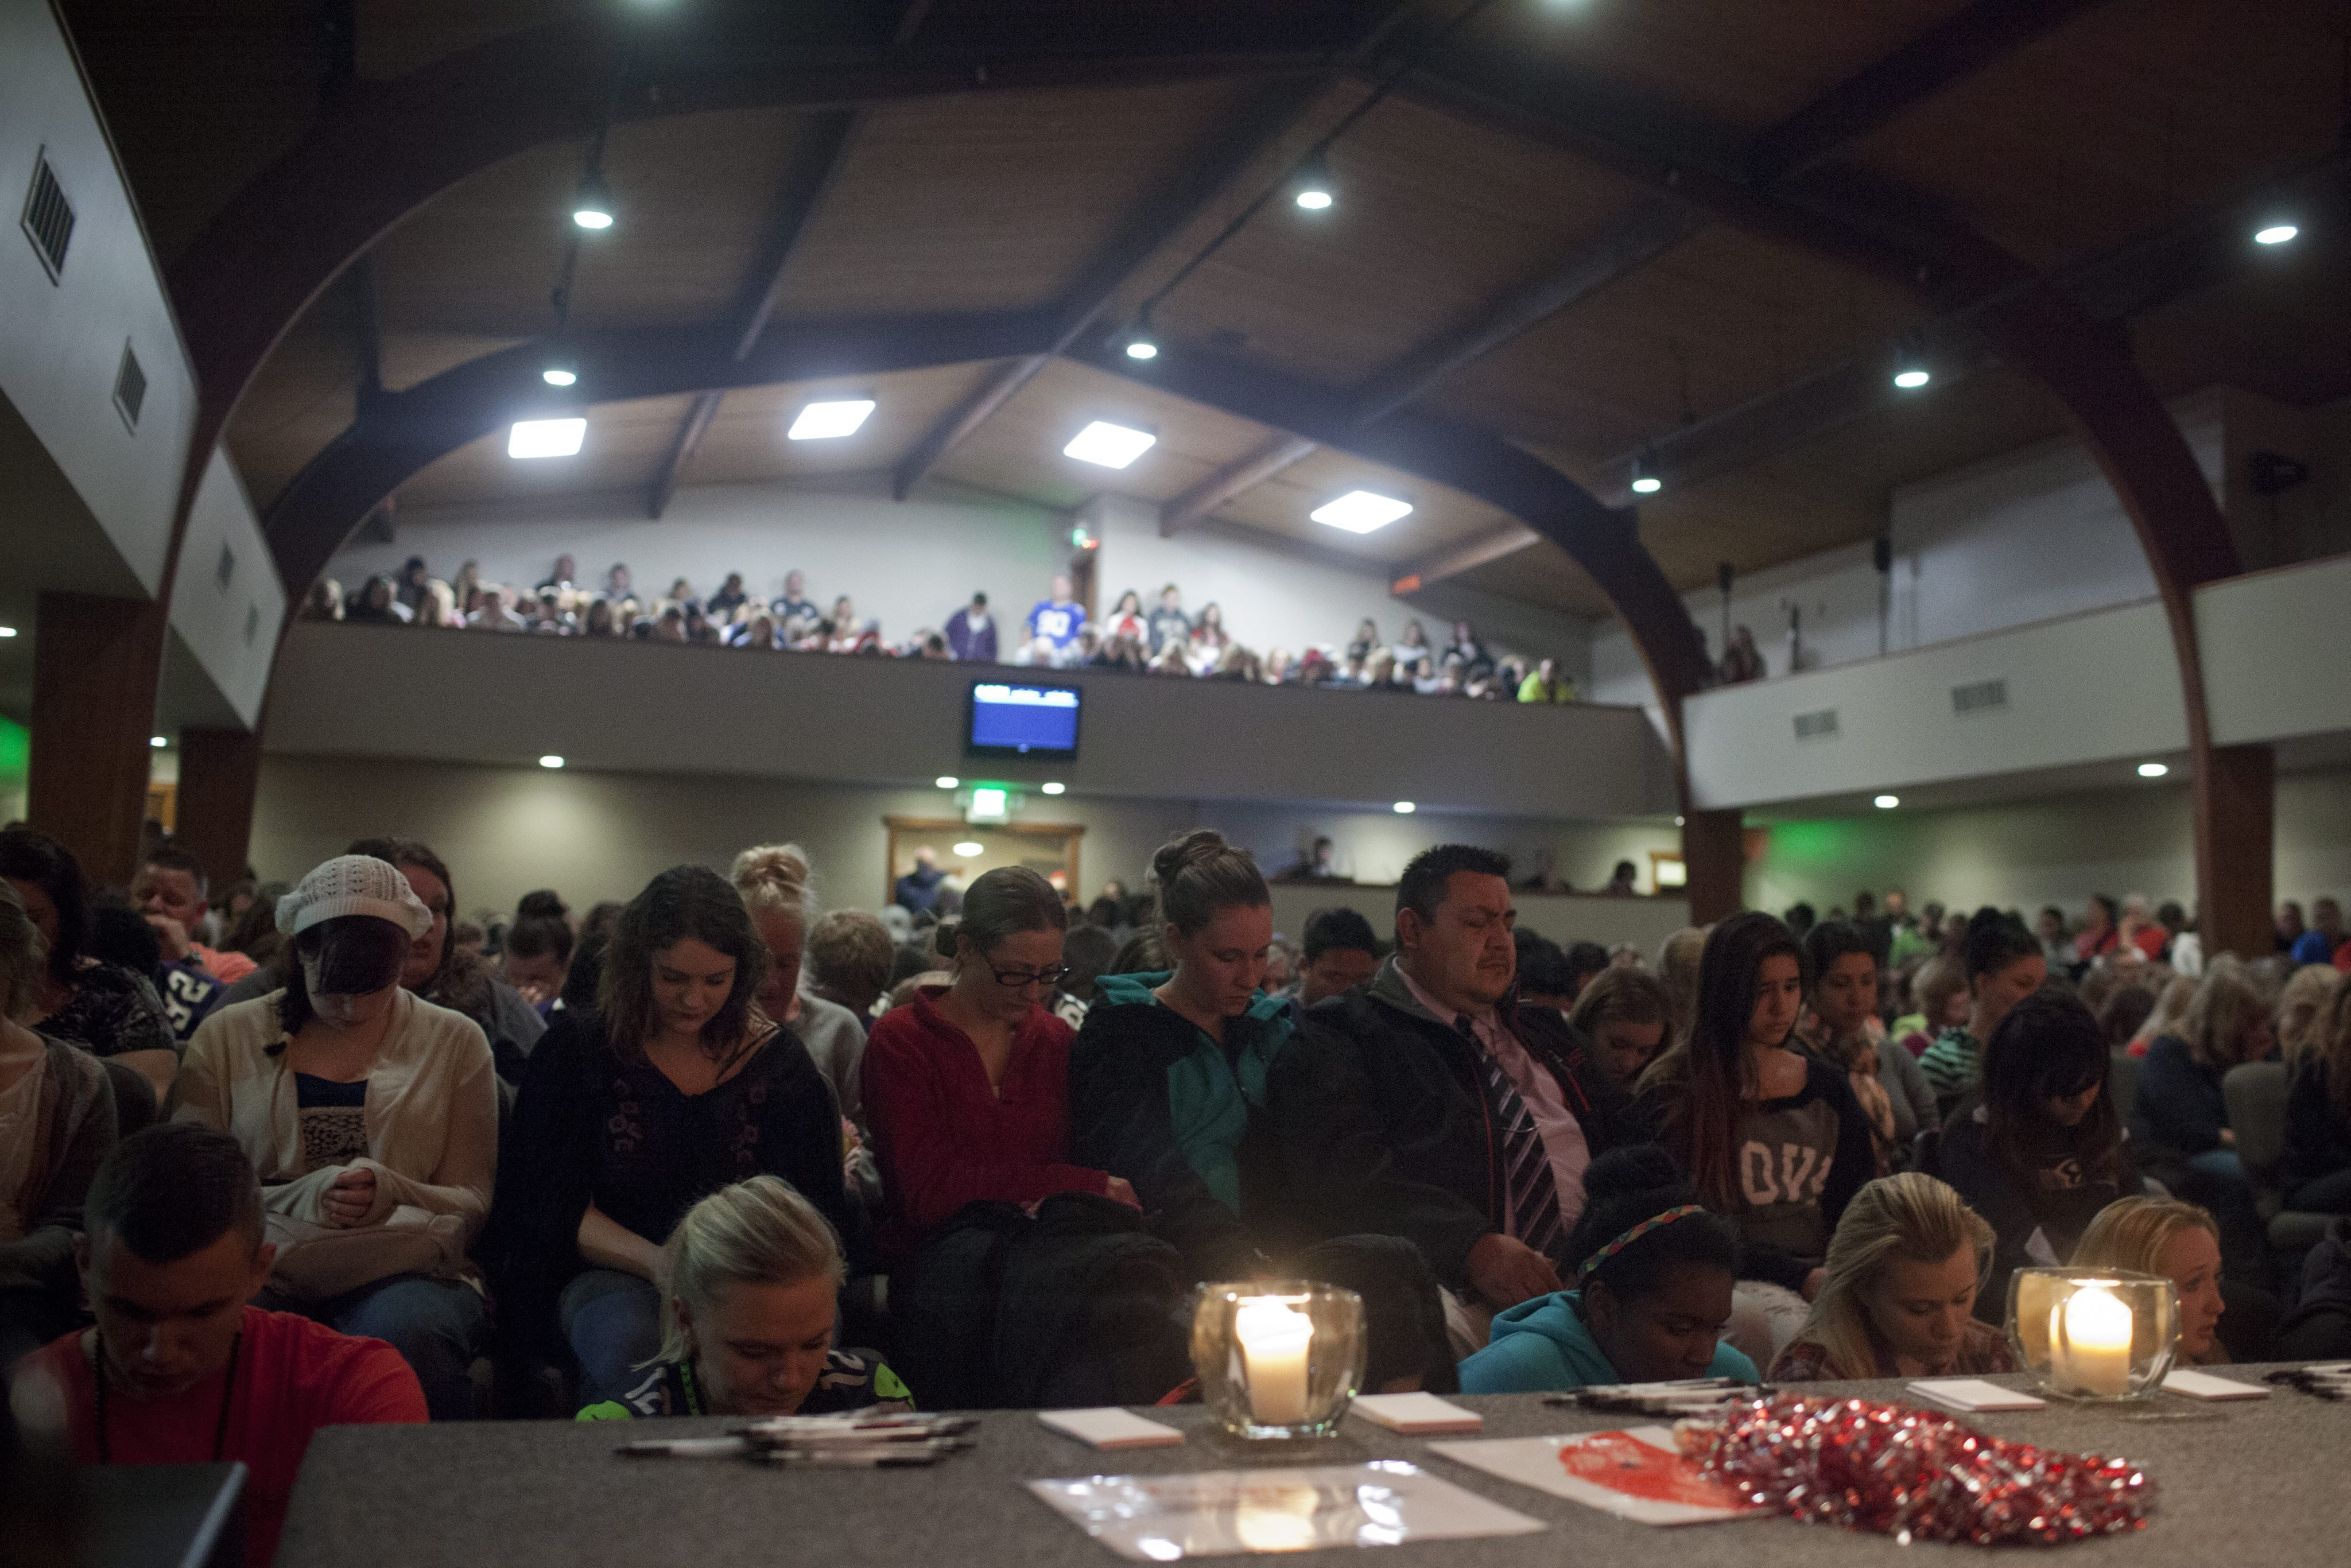 Students and community members attend a vigil at the Grove Church, after a school shooting that occurred at Marysville-Pilchuck High School earlier in the day in Marysville, Wash., on Oct. 24, 2014